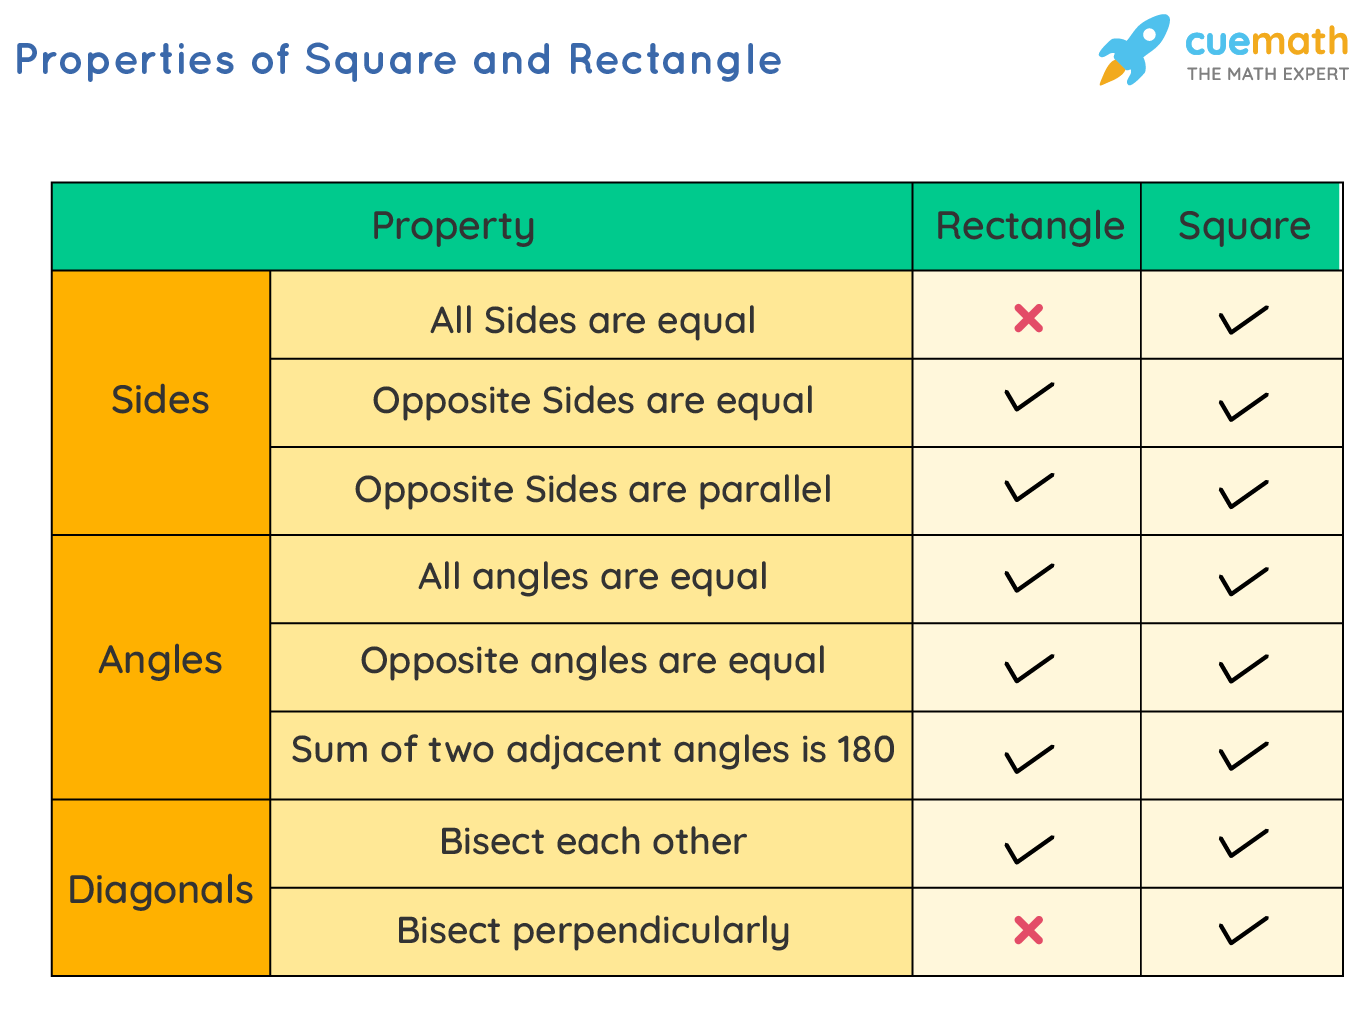 Properties of Square and Rectangle